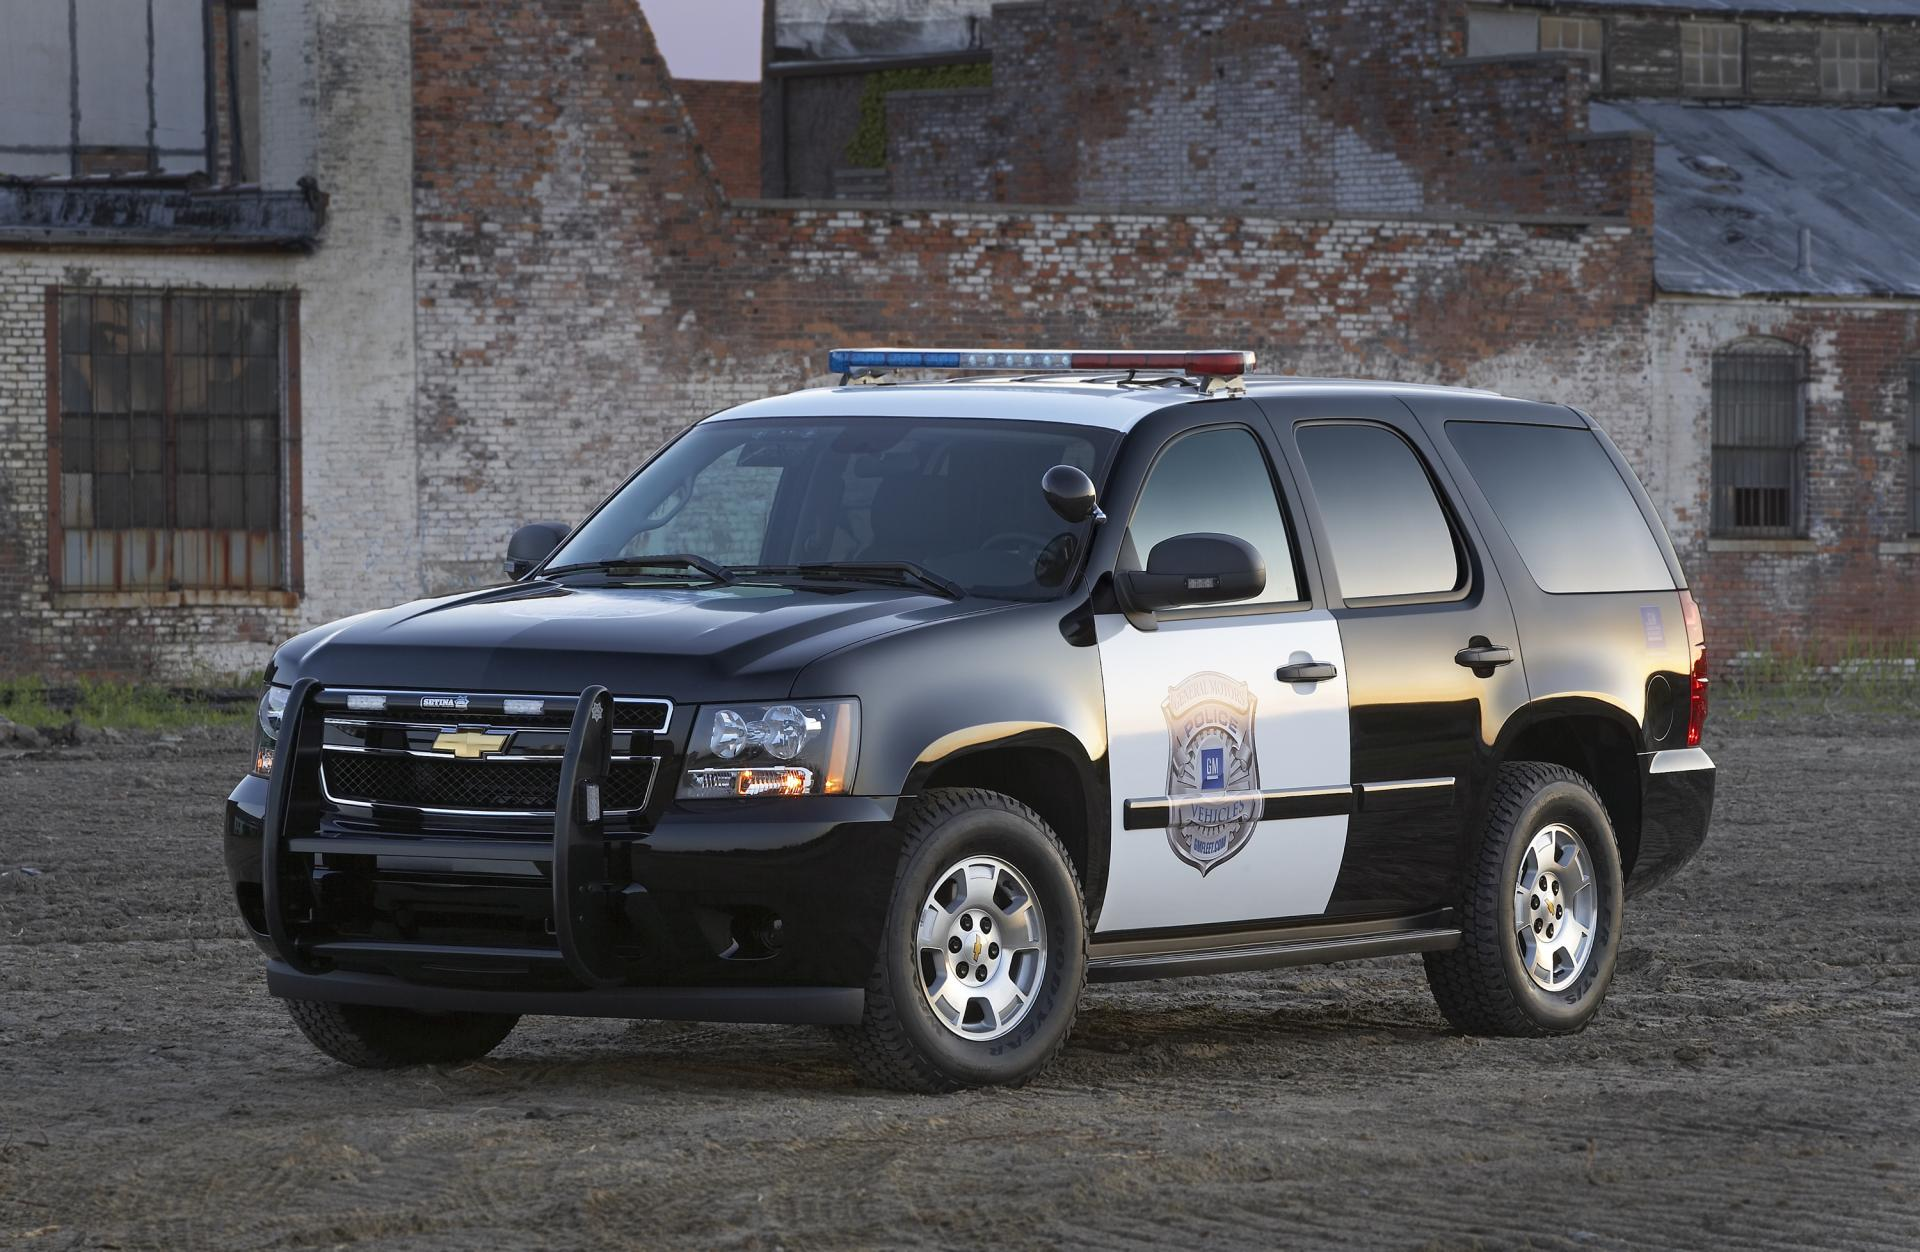 hight resolution of tahoe police vehicle diagram for wiring search wiring diagram 2018 tahoe police package wiring tahoe police package wiring